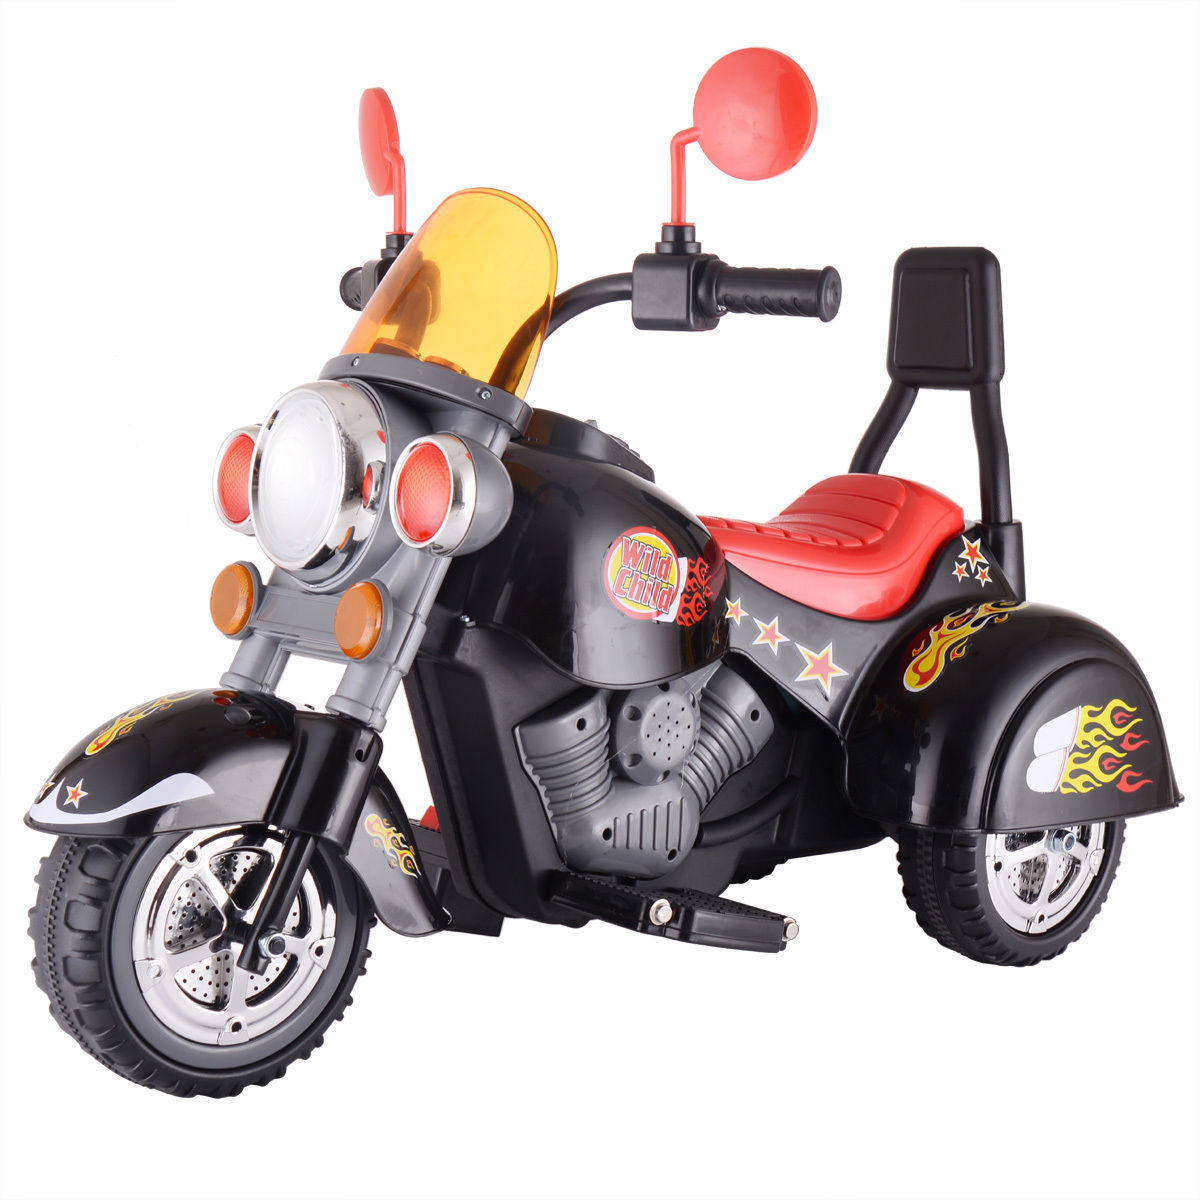 3 Wheel Harley Style Kids Ride On Motorcycle 6V Battery Powered Electric Toy